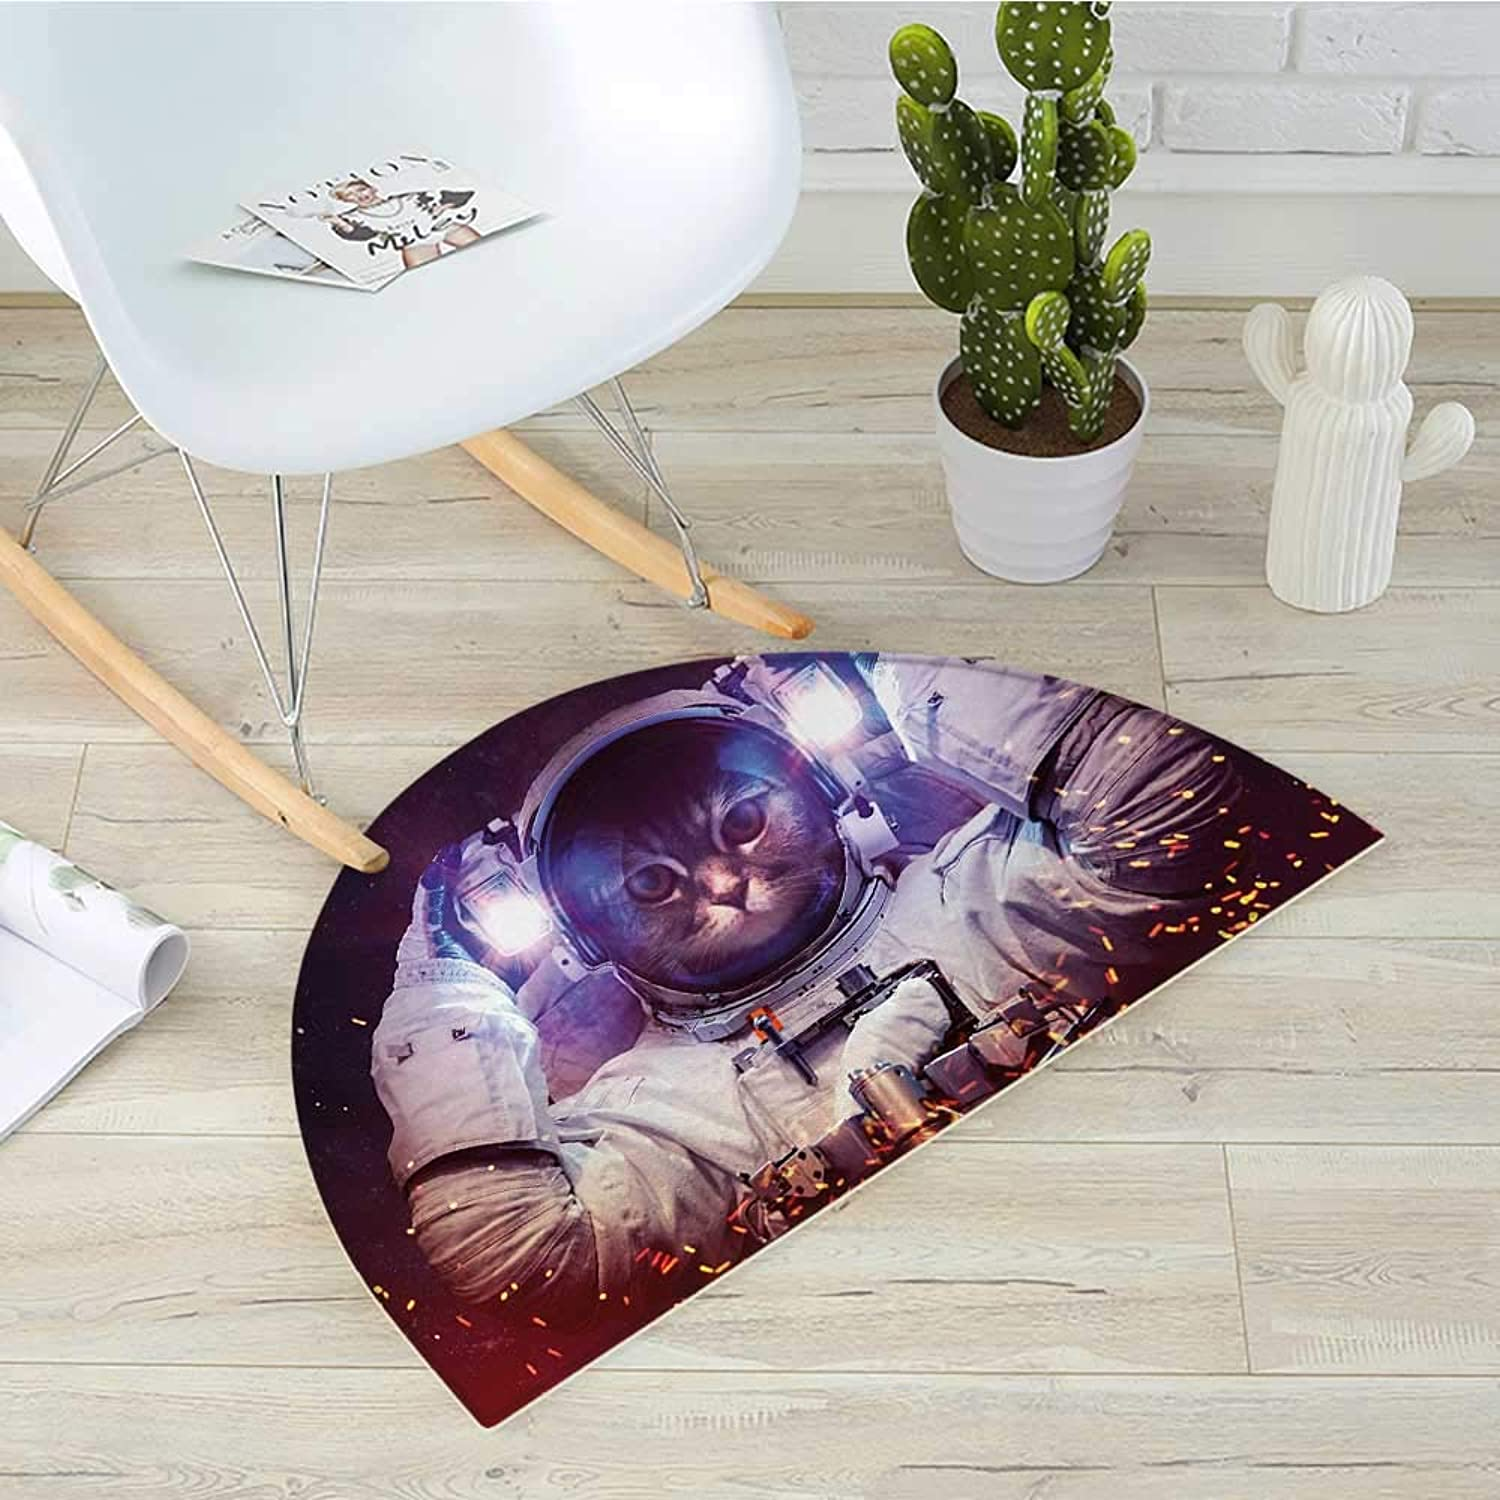 Space Cat Half Round Door mats Astronaut Cat in Suit Outer Space Nebula Galaxy Cosmos Fire Image Bathroom Mat H 39.3  xD 59  Purple Dark bluee and White